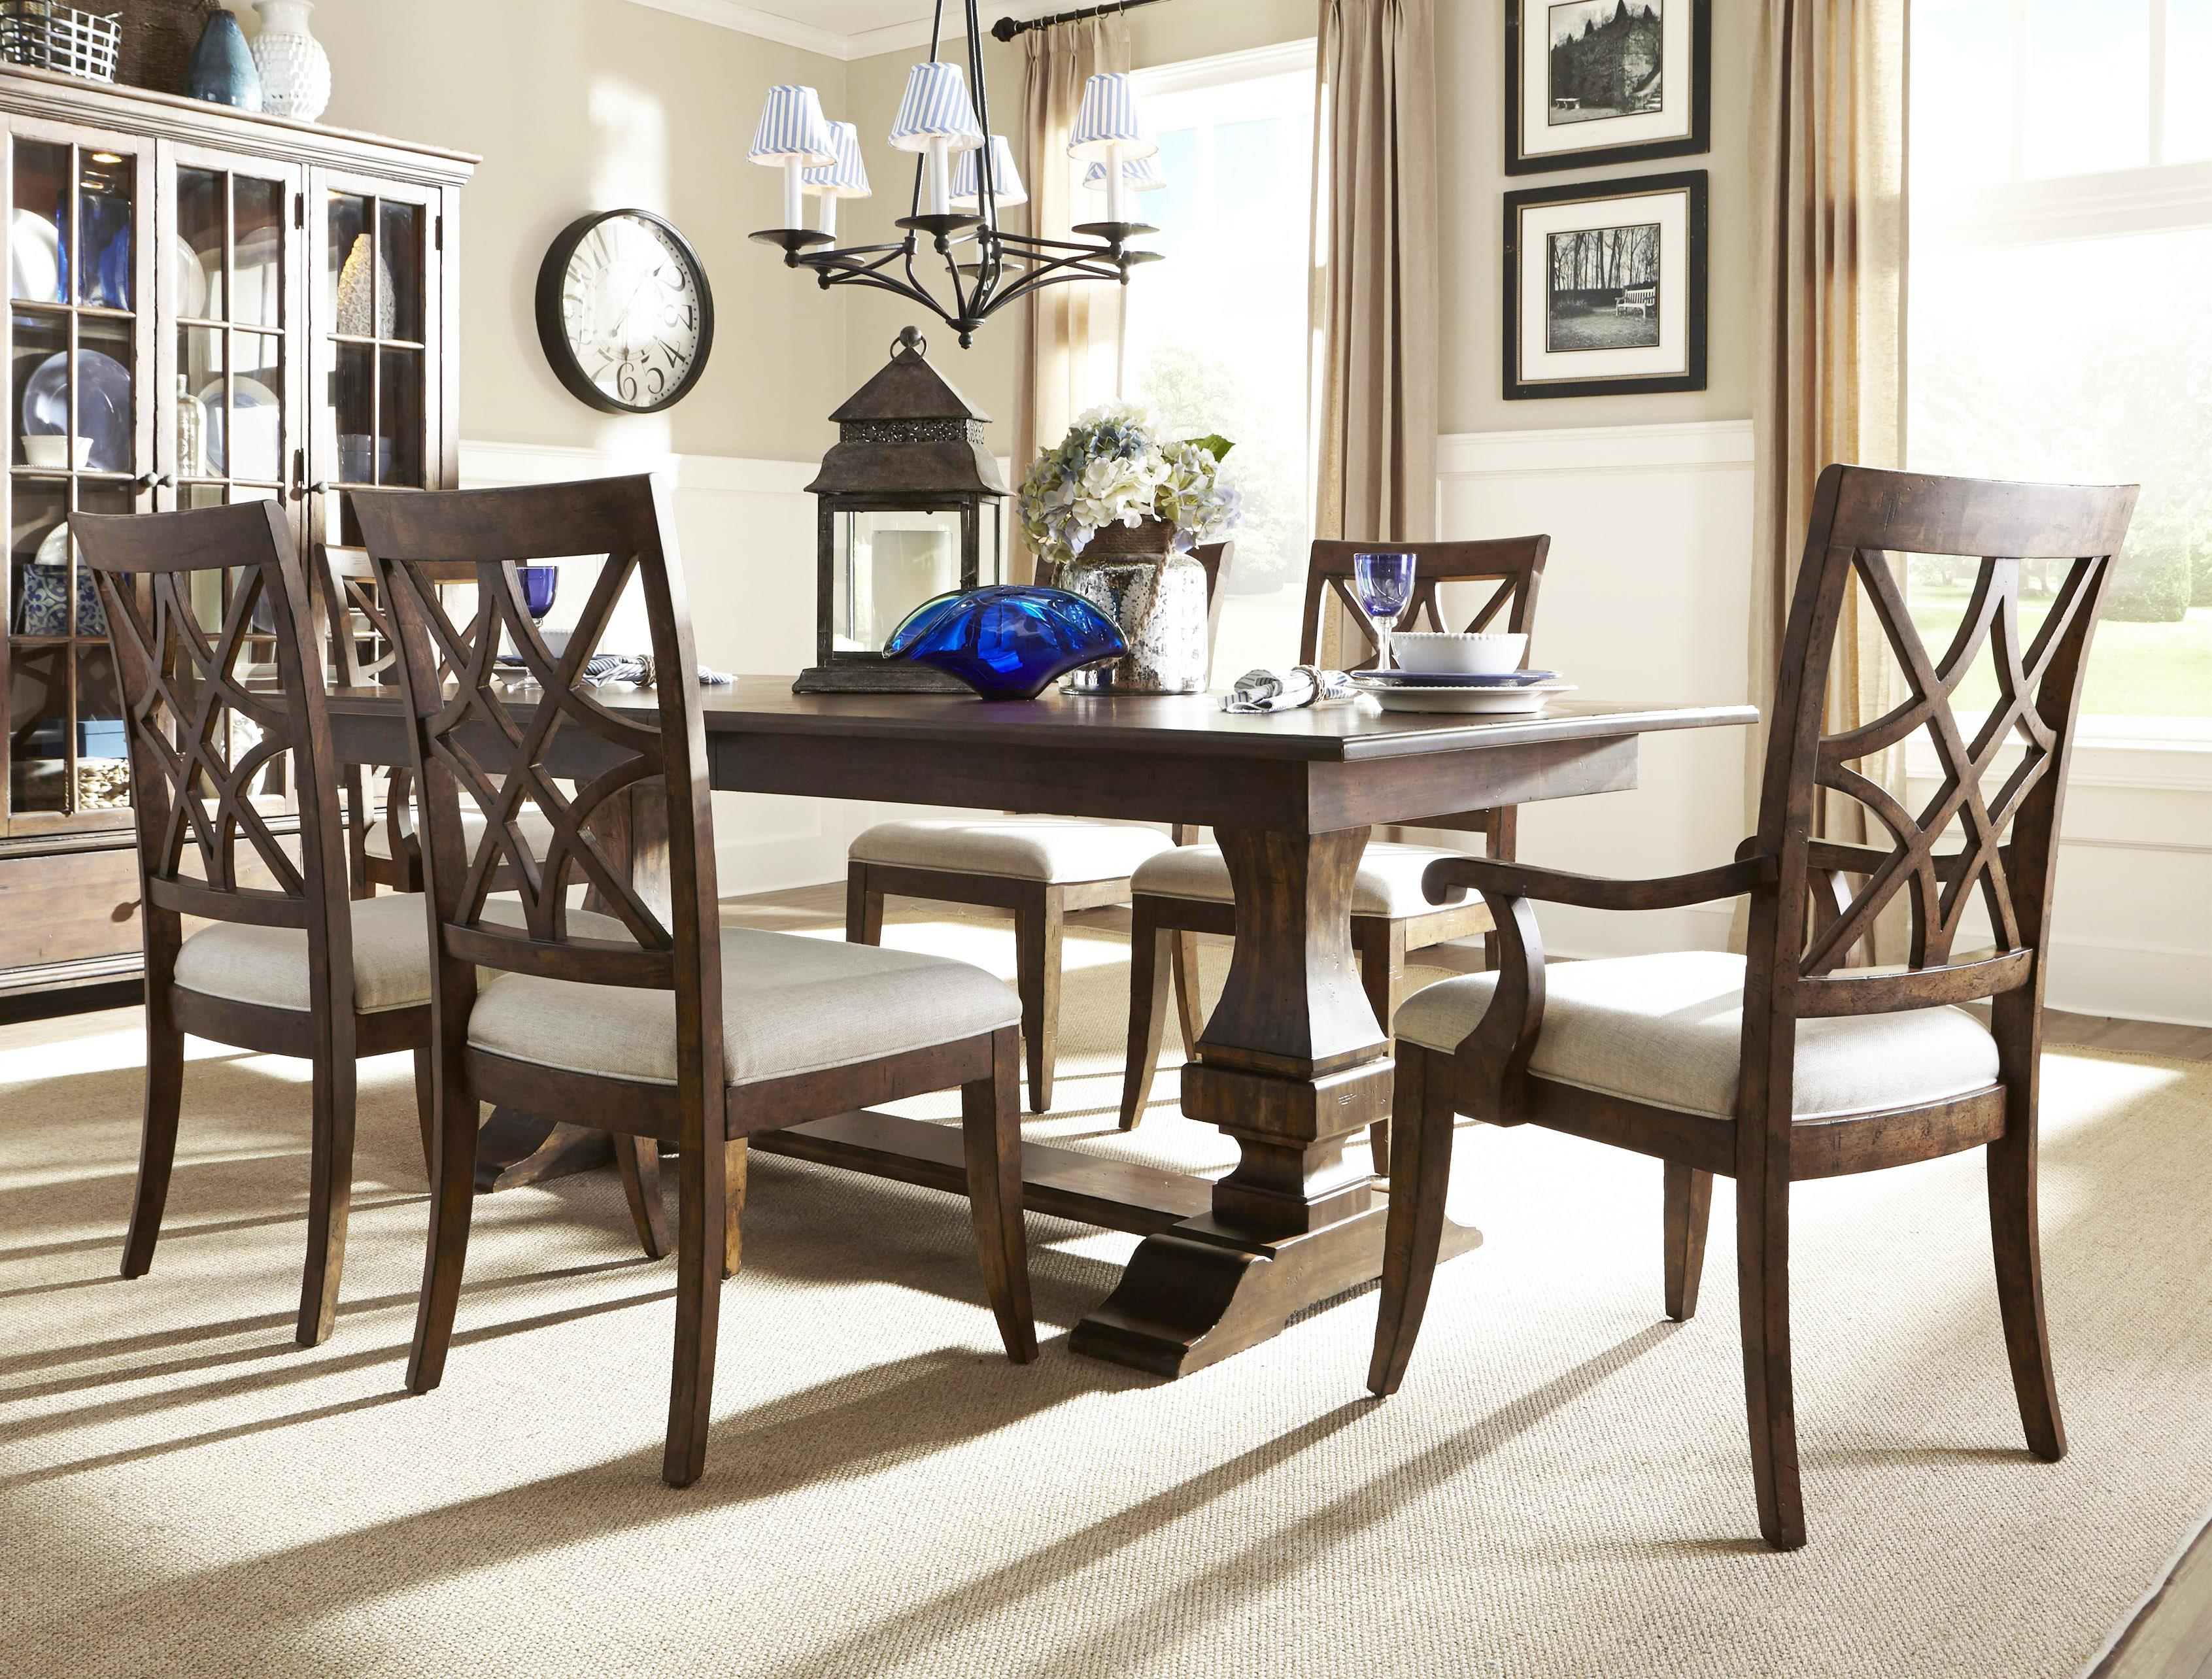 Trisha Yearwood Home 8-Piece Dining Set